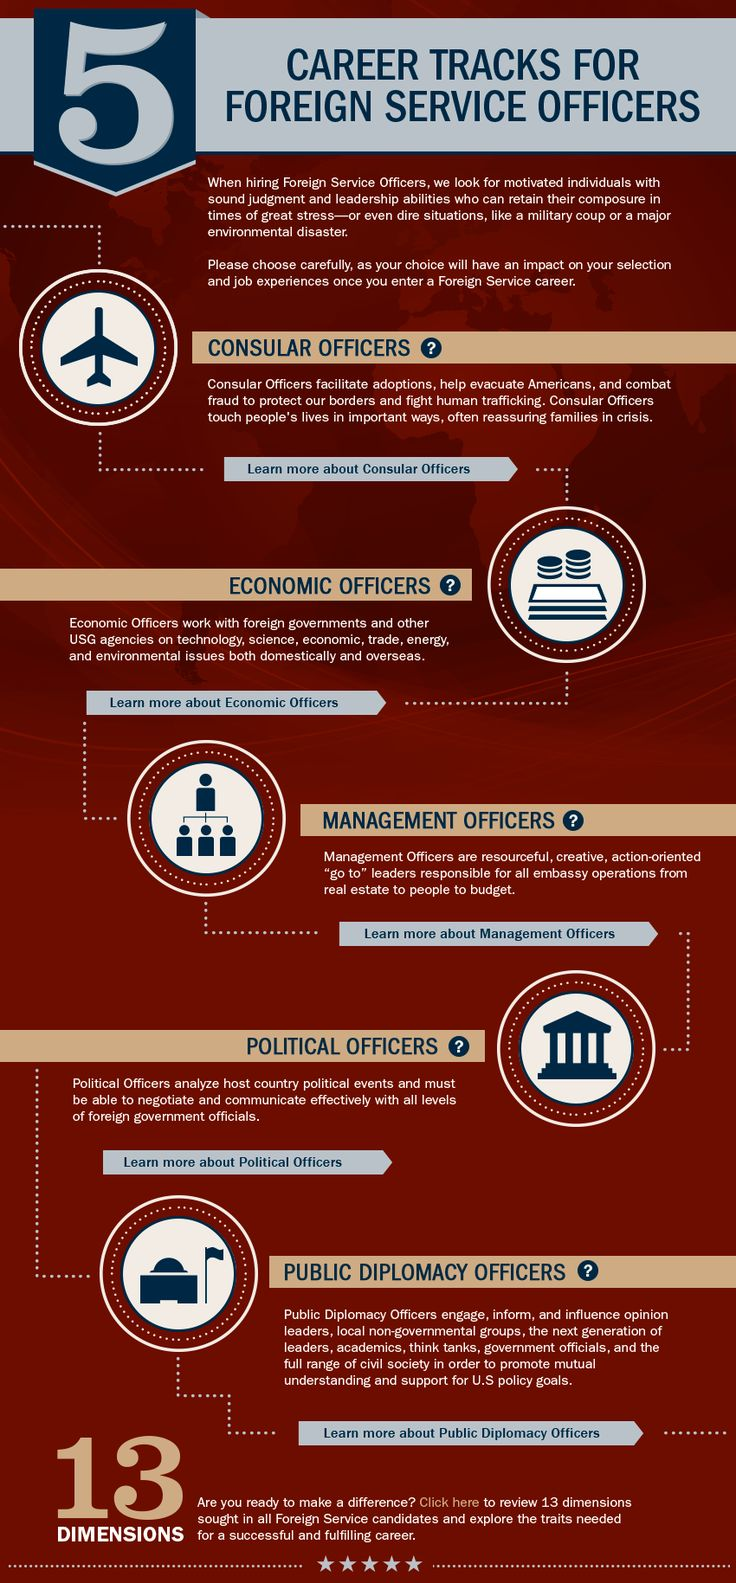 Career Tracks Infographic Career, Foreign service